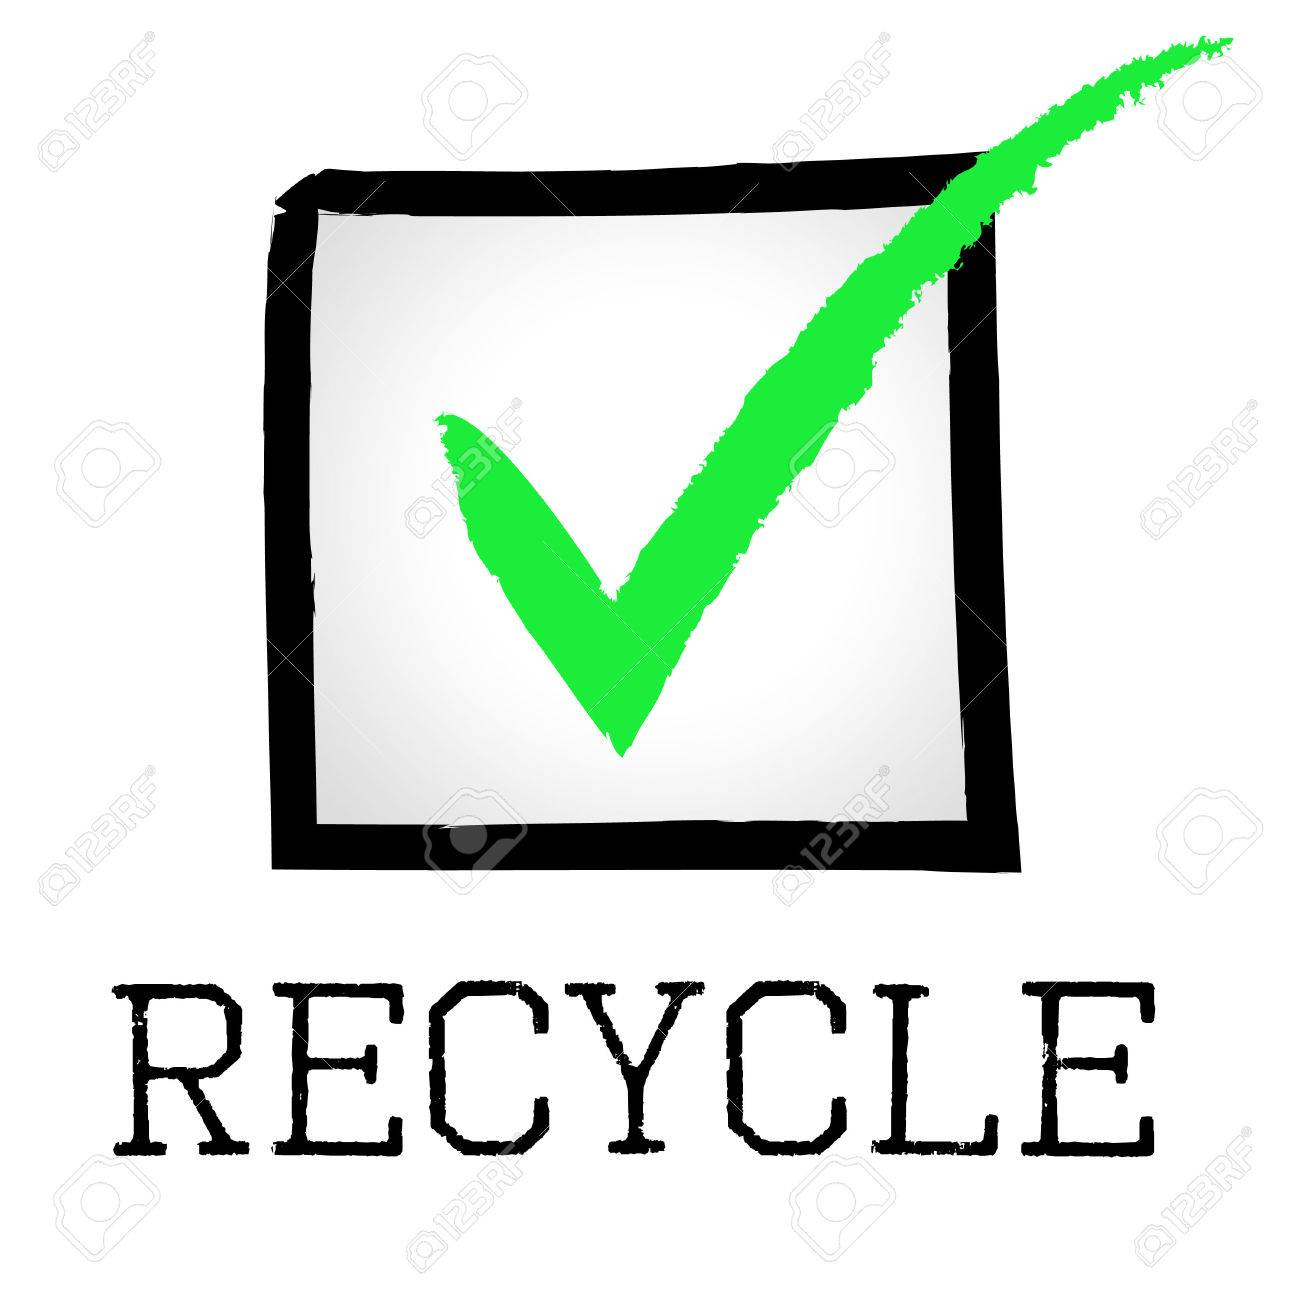 Tick Recycle Meaning Earth Friendly And Correct Stock Photo Picture